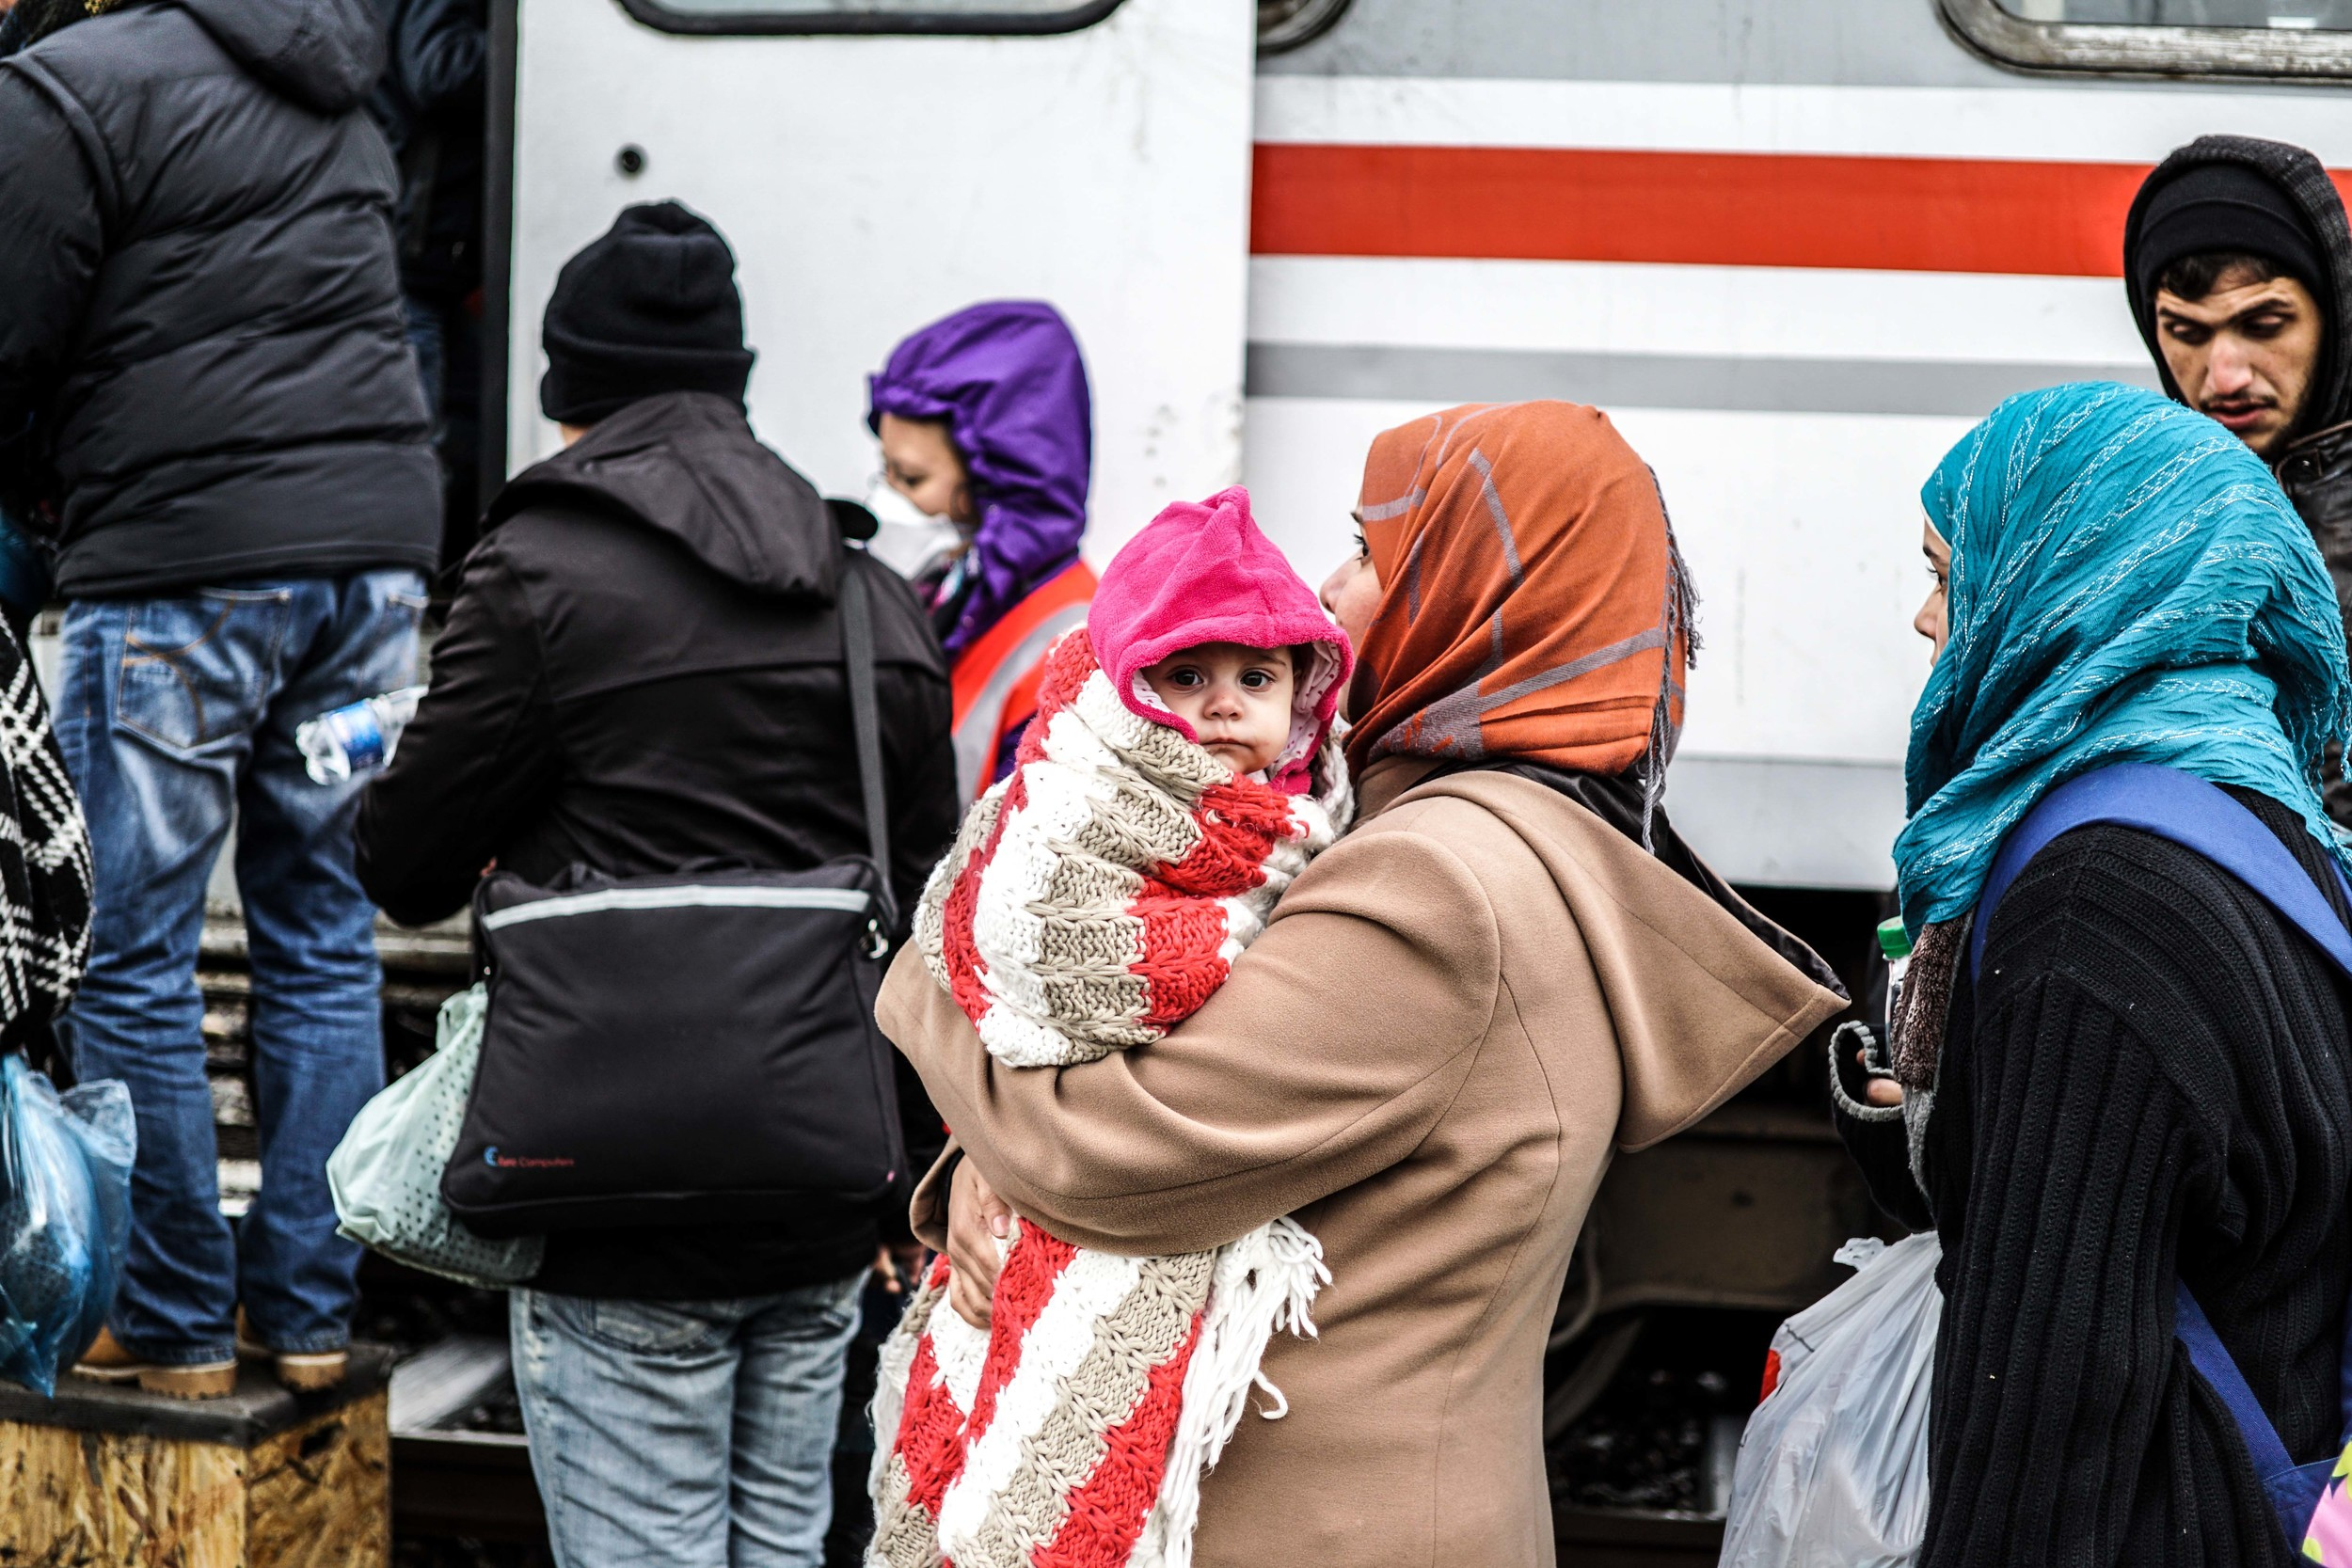 Syrian Refugee Crisis Croatia Slavonski Brod Winter Refugee Camp November 2015 6.jpg